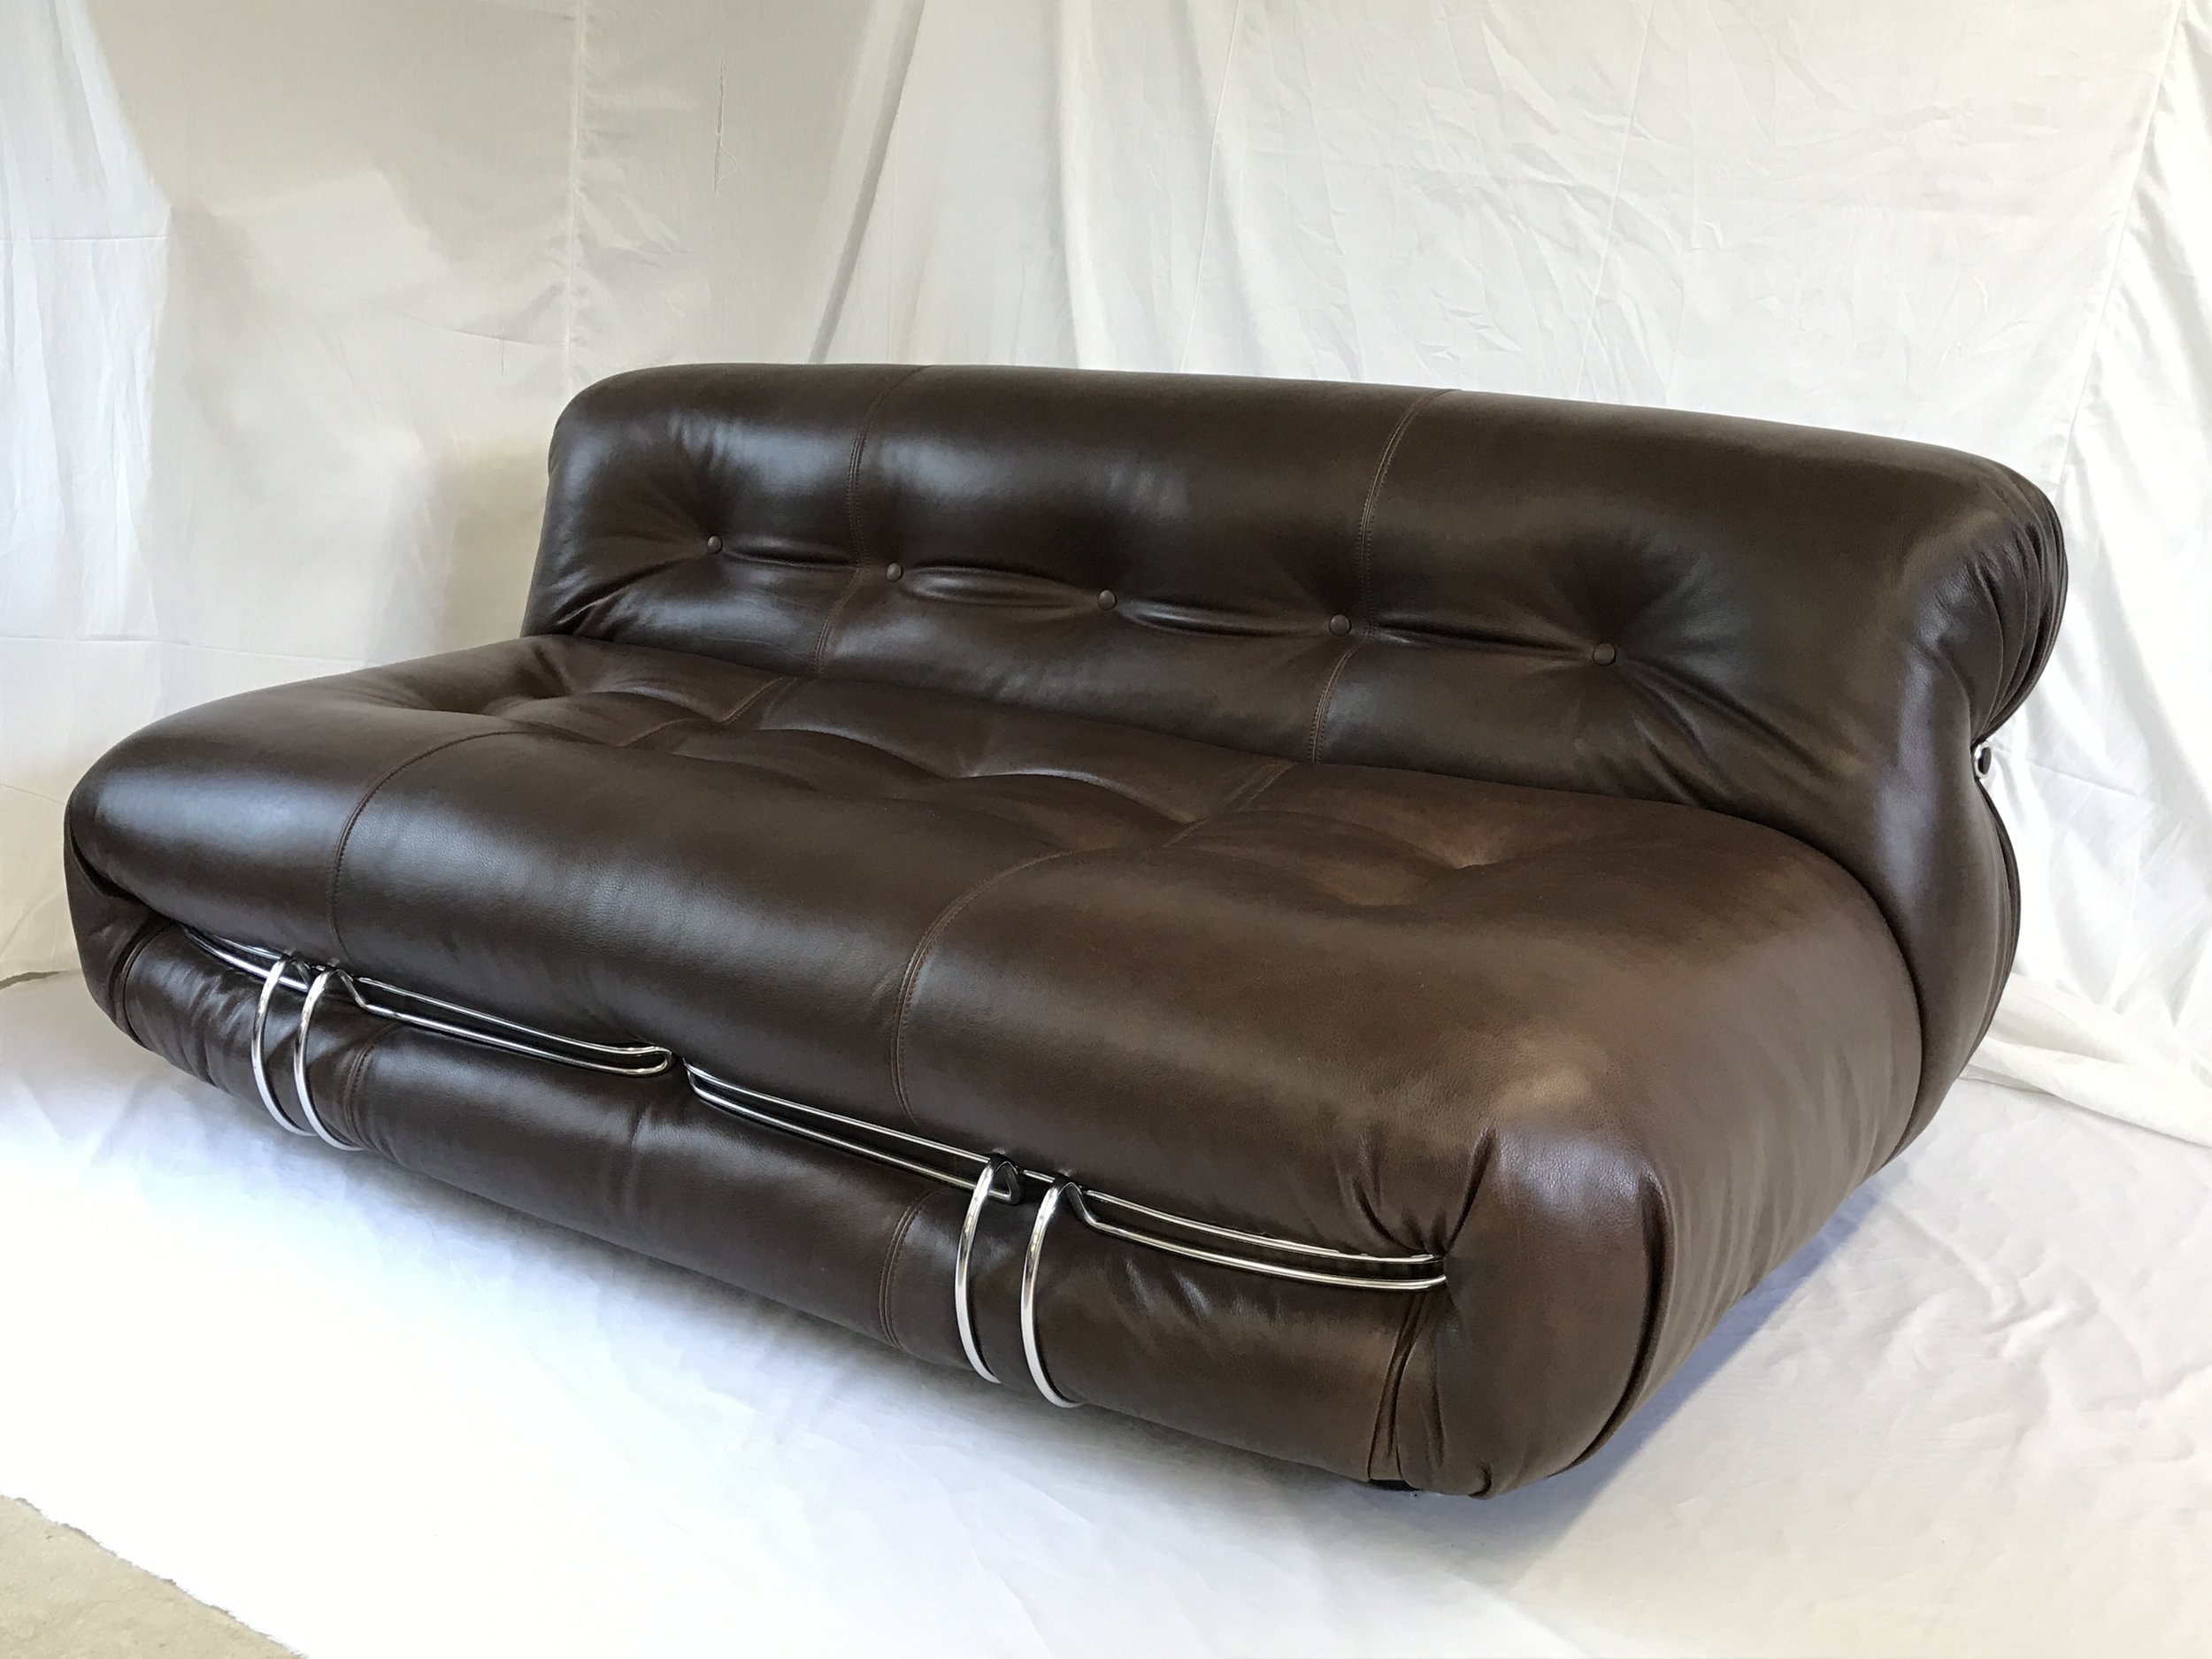 restored Soriana sofa, design Tobia Scarpa for Cassina, 1970s, dark brown luxury leather